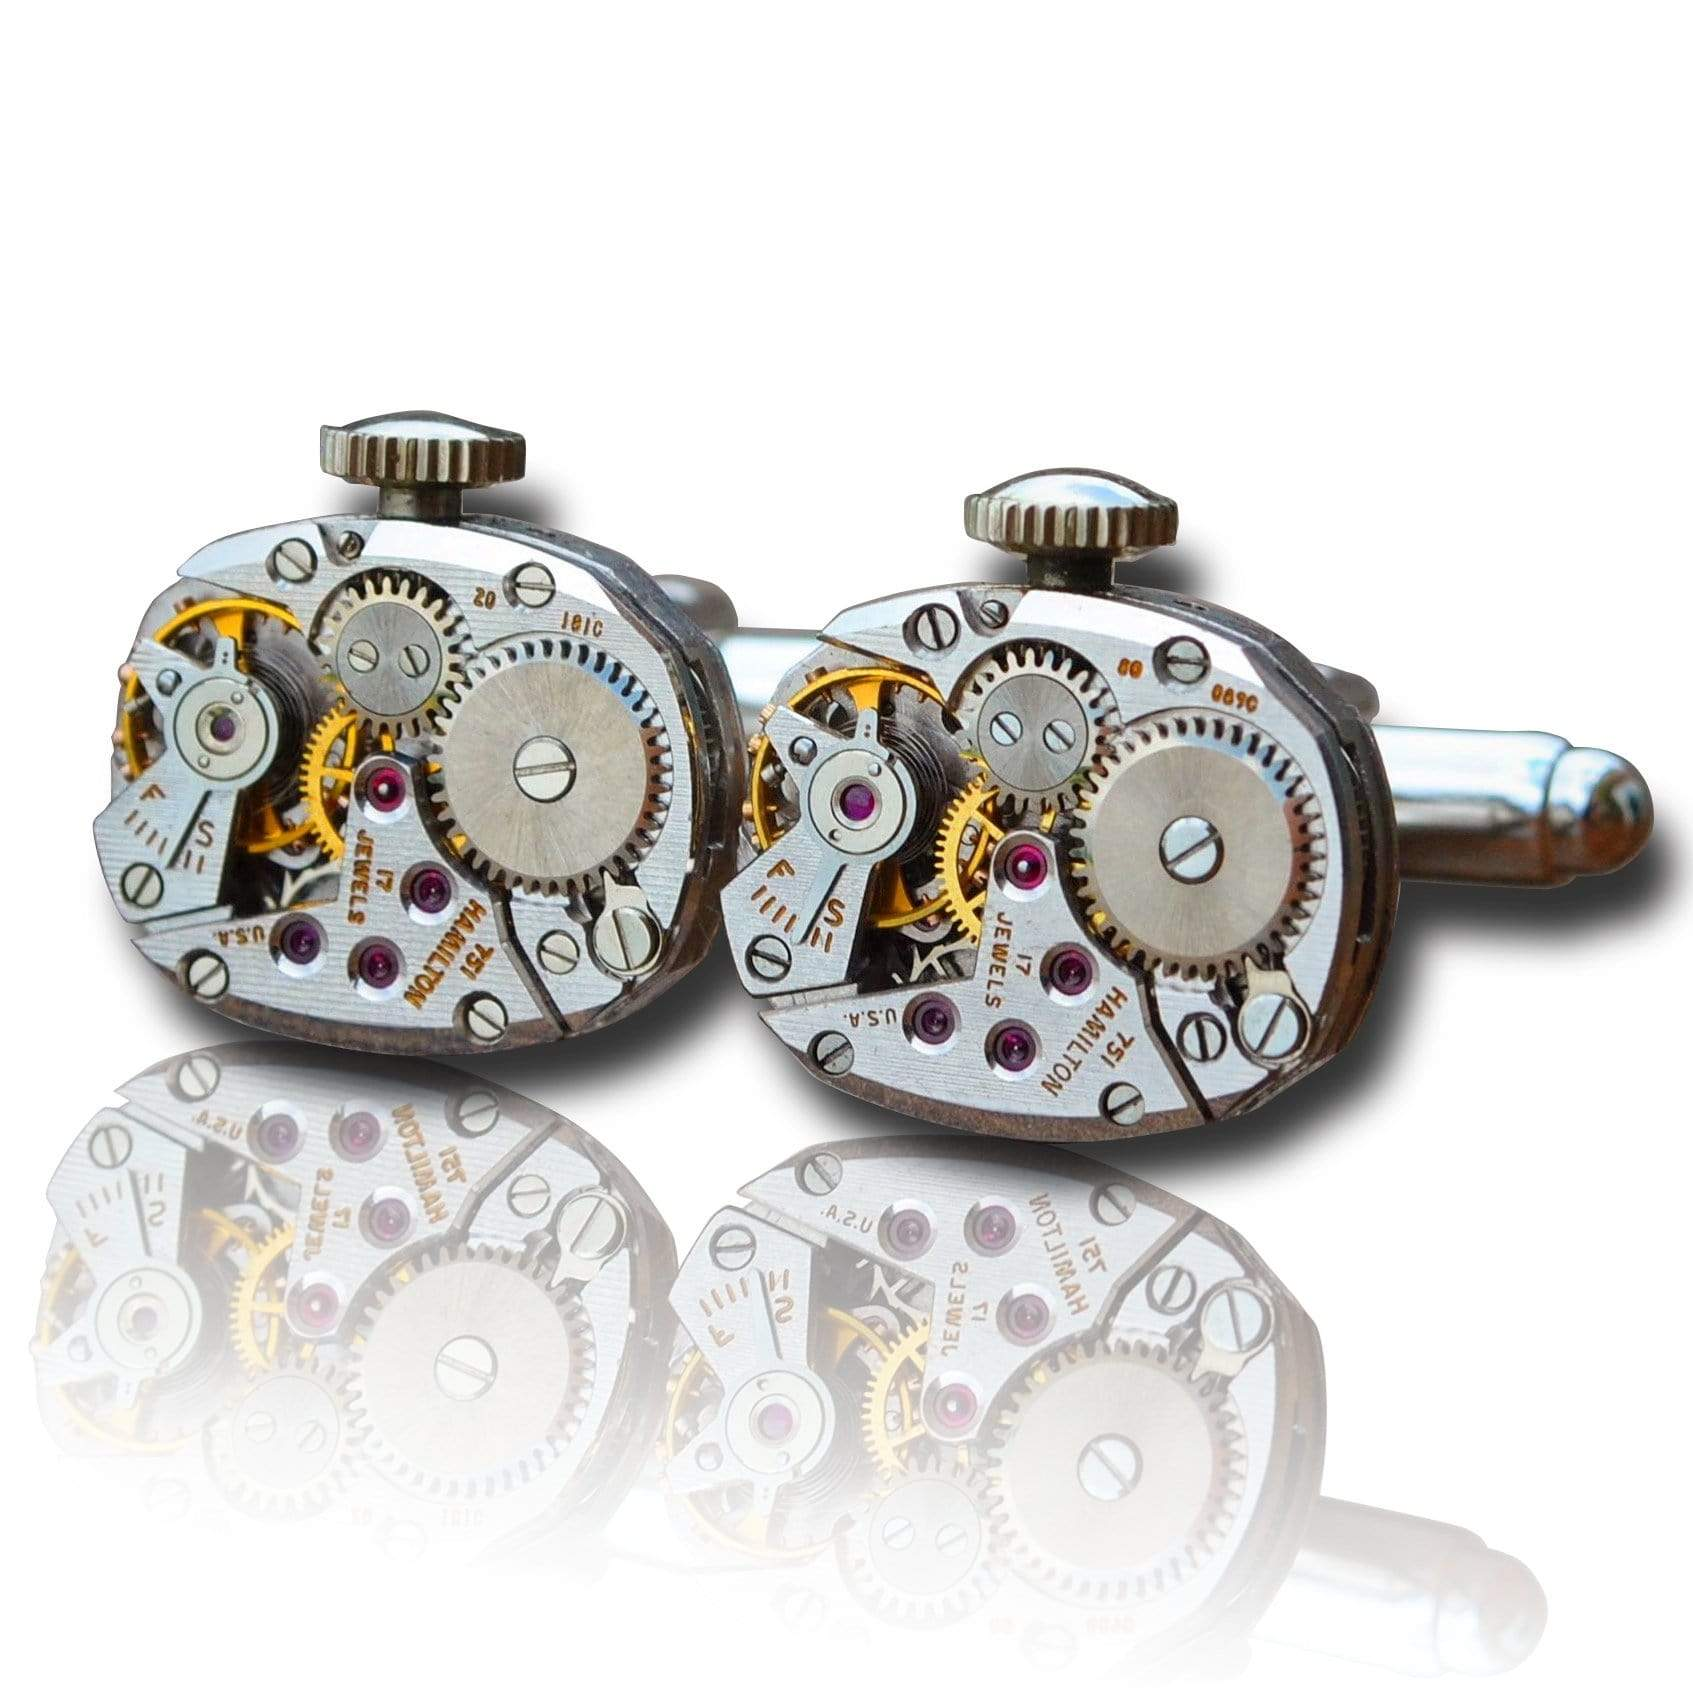 Men's Cufflinks | Lingo Luxe The Chiba-Lingo Luxe Bespoke